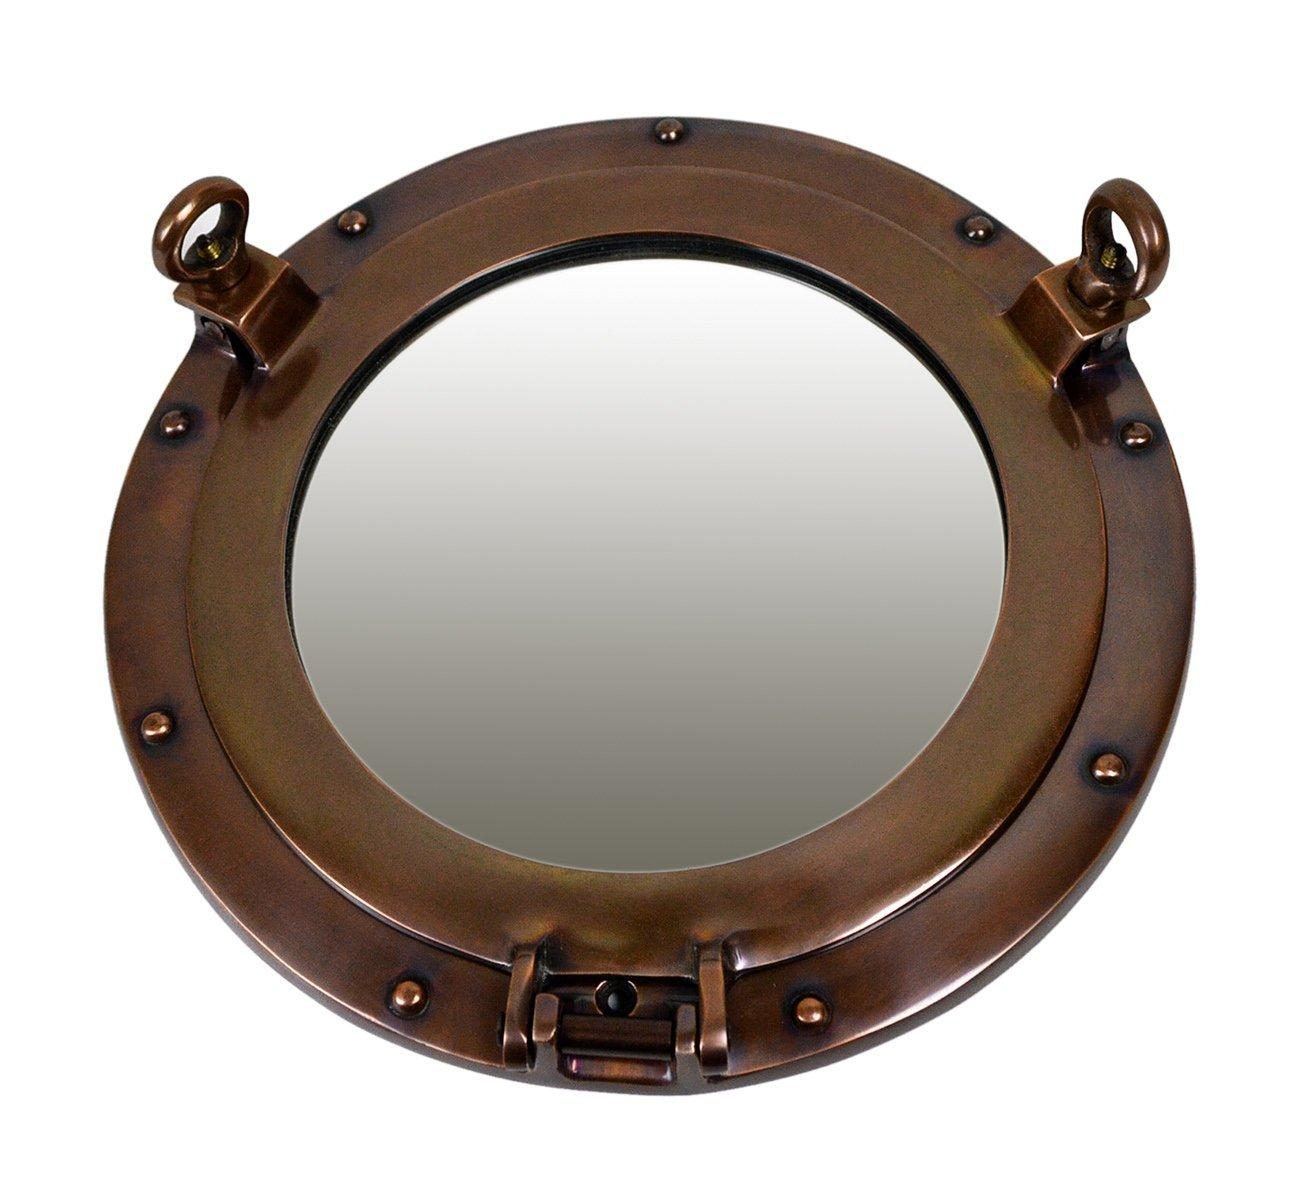 Porthole Windows Porthole Mirrors Largest Selection Ships Port Holes Throughout Porthole Mirrors For Sale (Image 15 of 20)